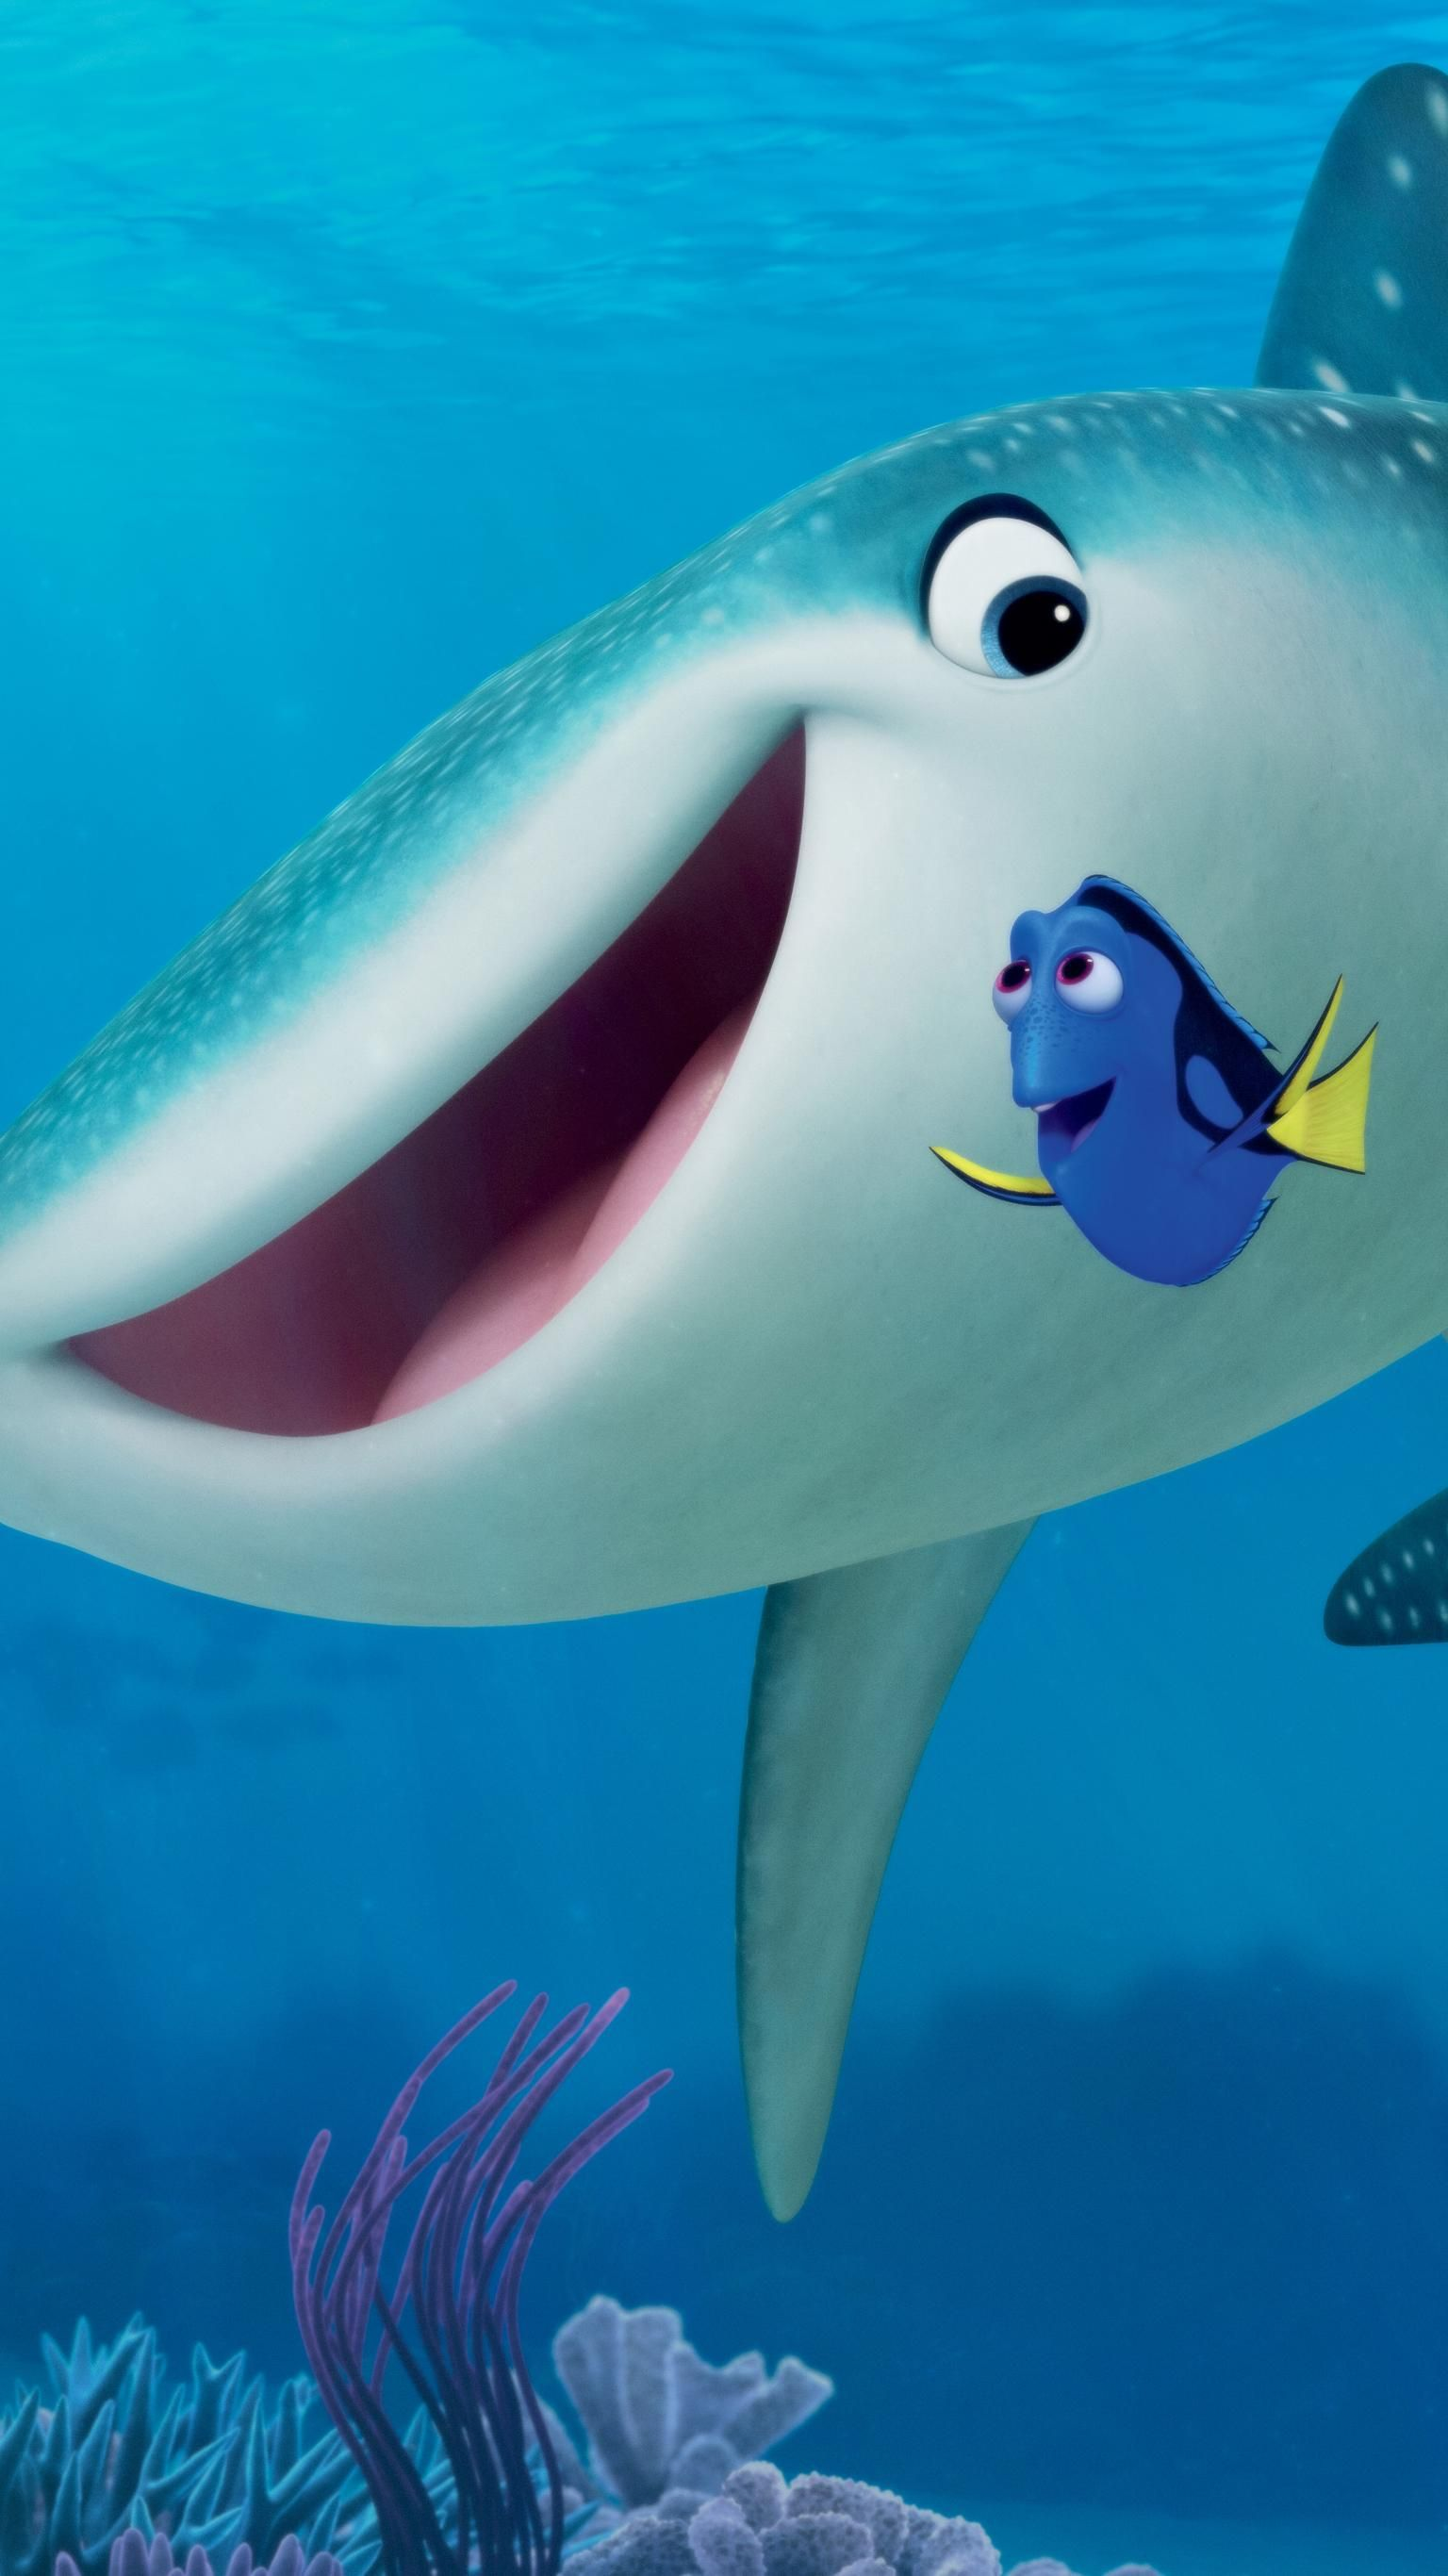 Finding Dory 2016 Phone Wallpaper Moviemania In 2020 Wallpaper Phone Wallpaper Swimming Pictures